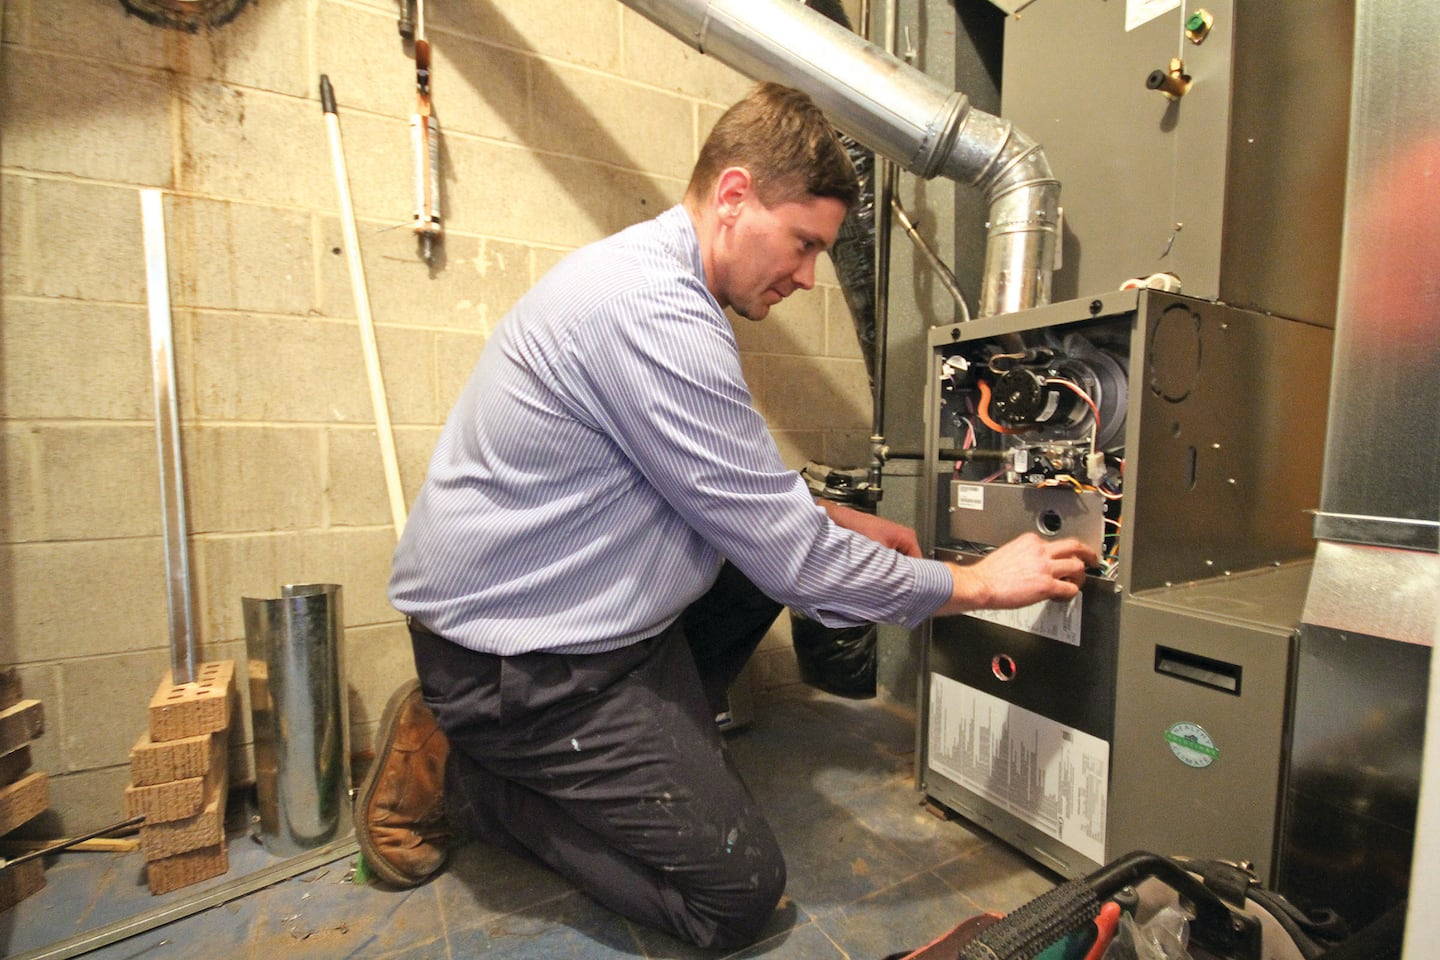 Average cost of new furnace and ac for home - Hvac Pro Furnace Installation